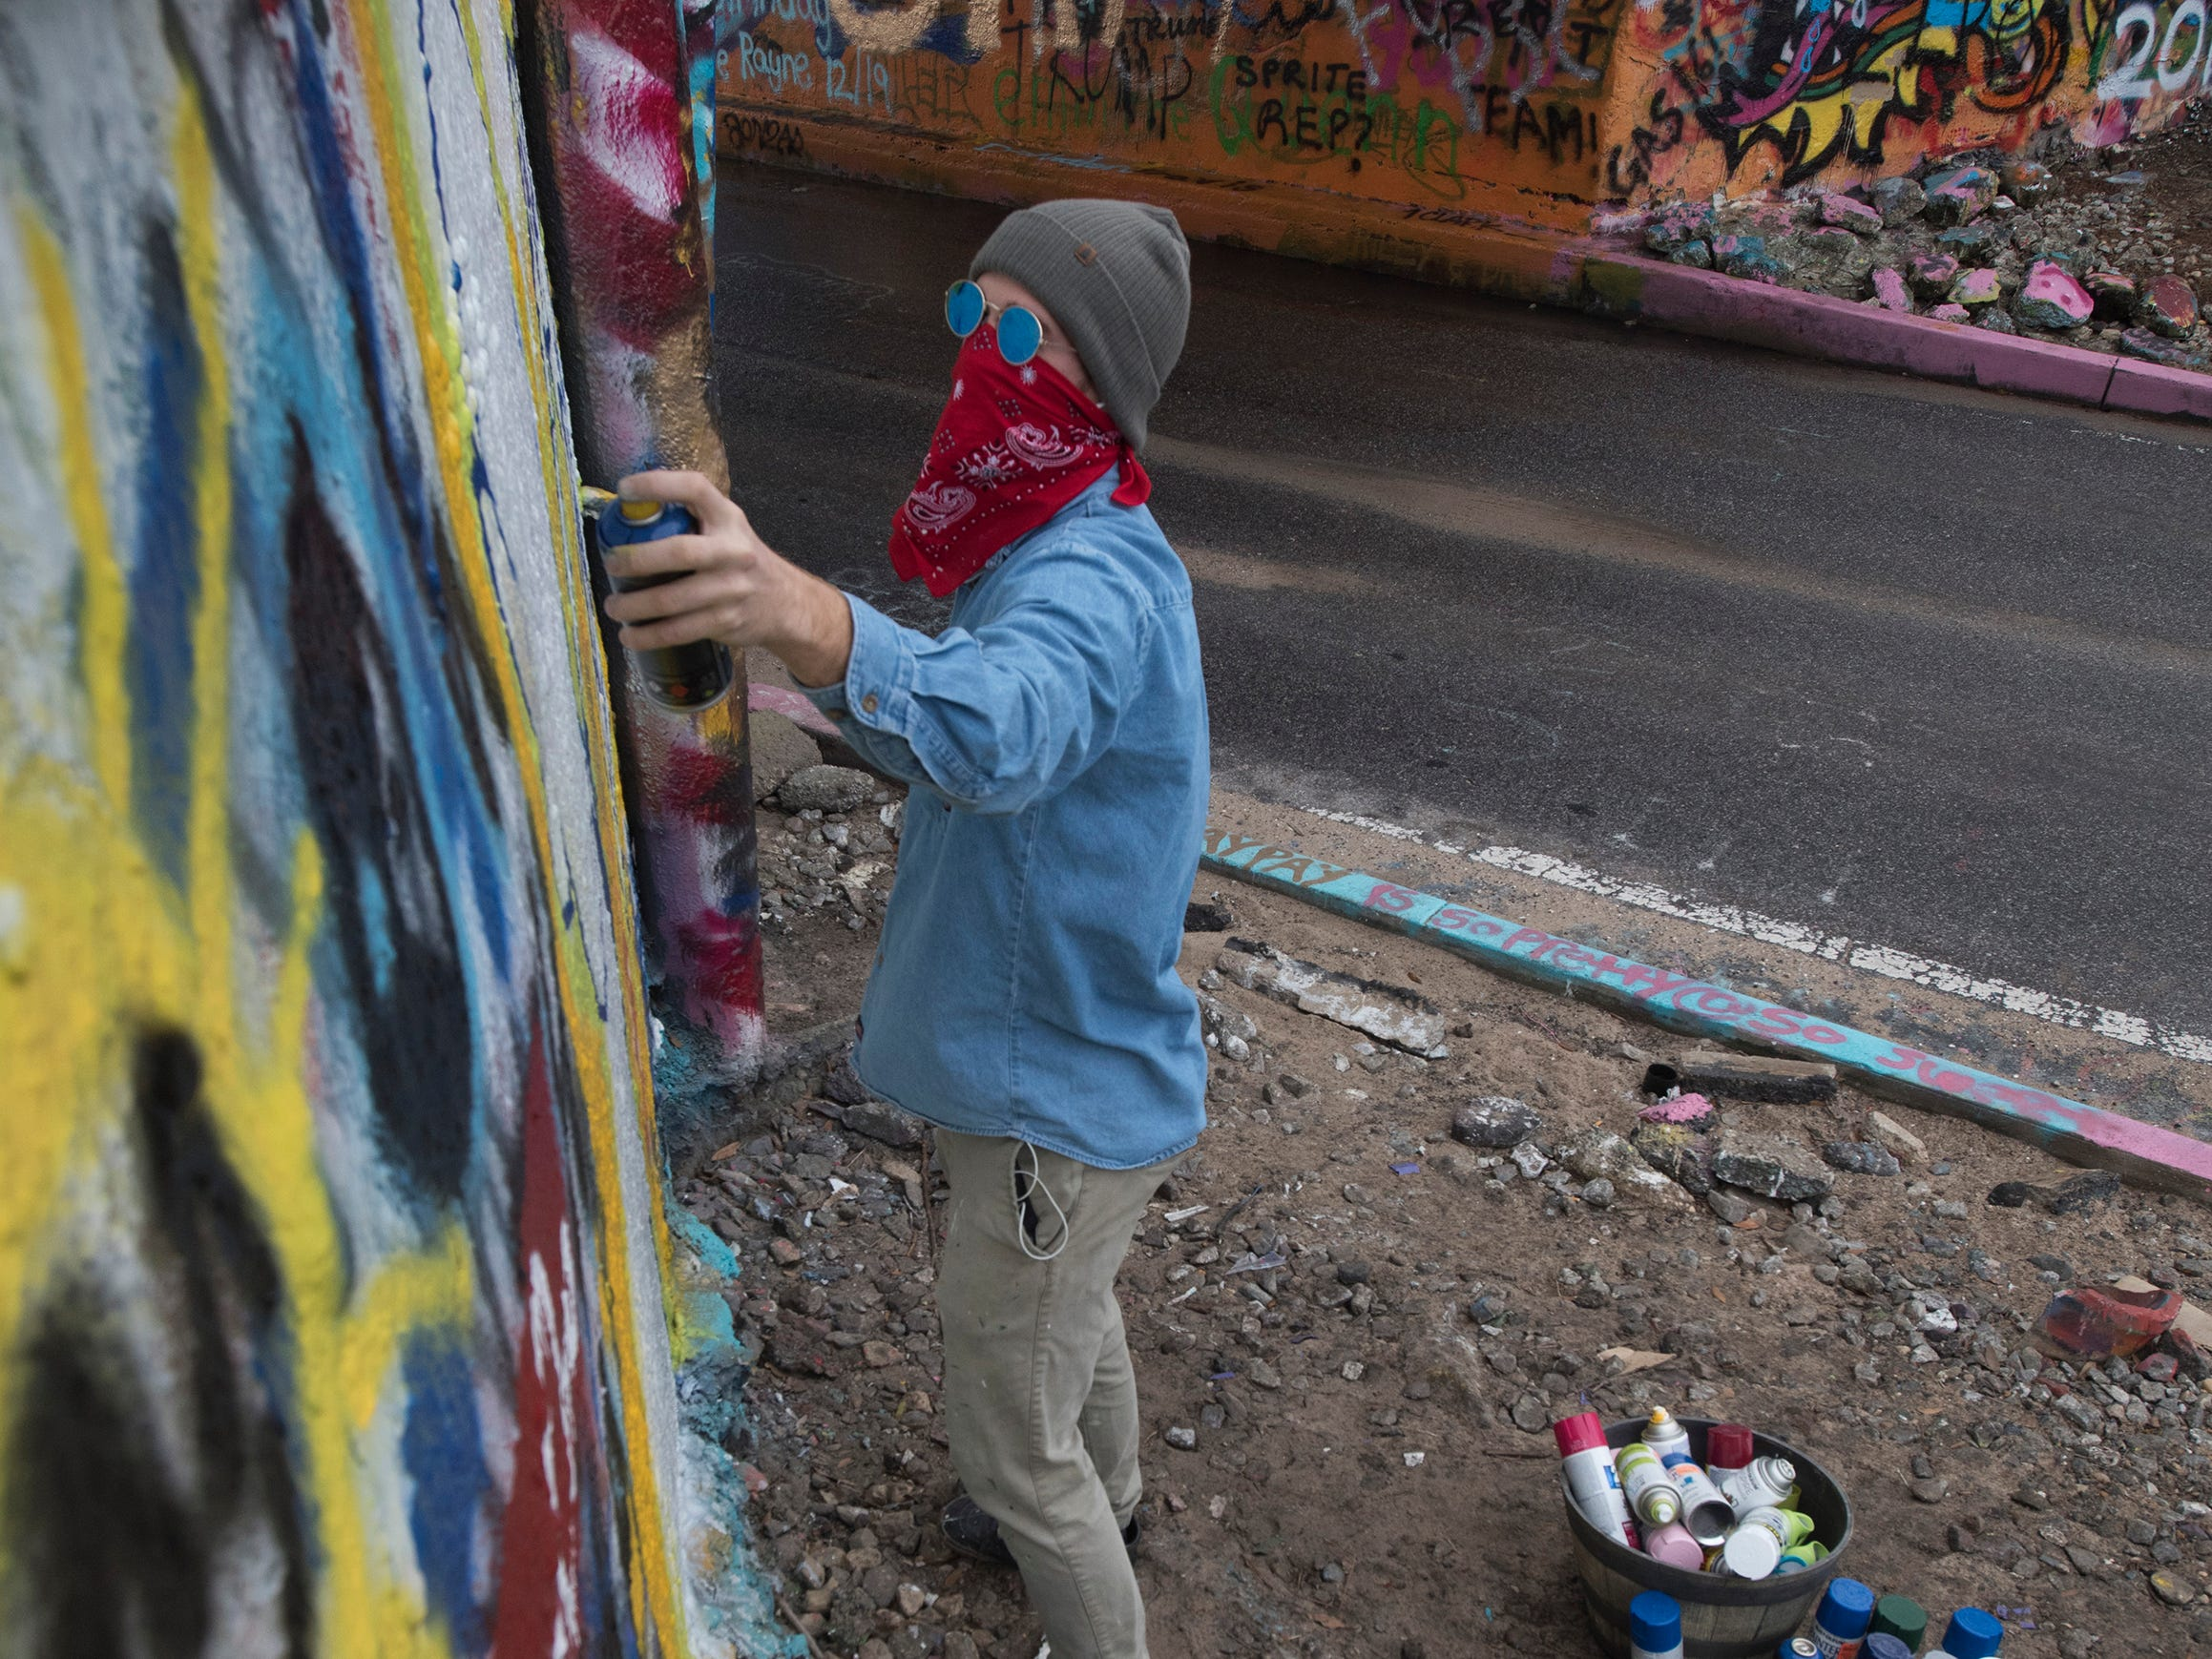 Street artist Monty Welt tags the Graffiti Bridge in Pensacola with his art Thursday, Dec. 27, 2018.